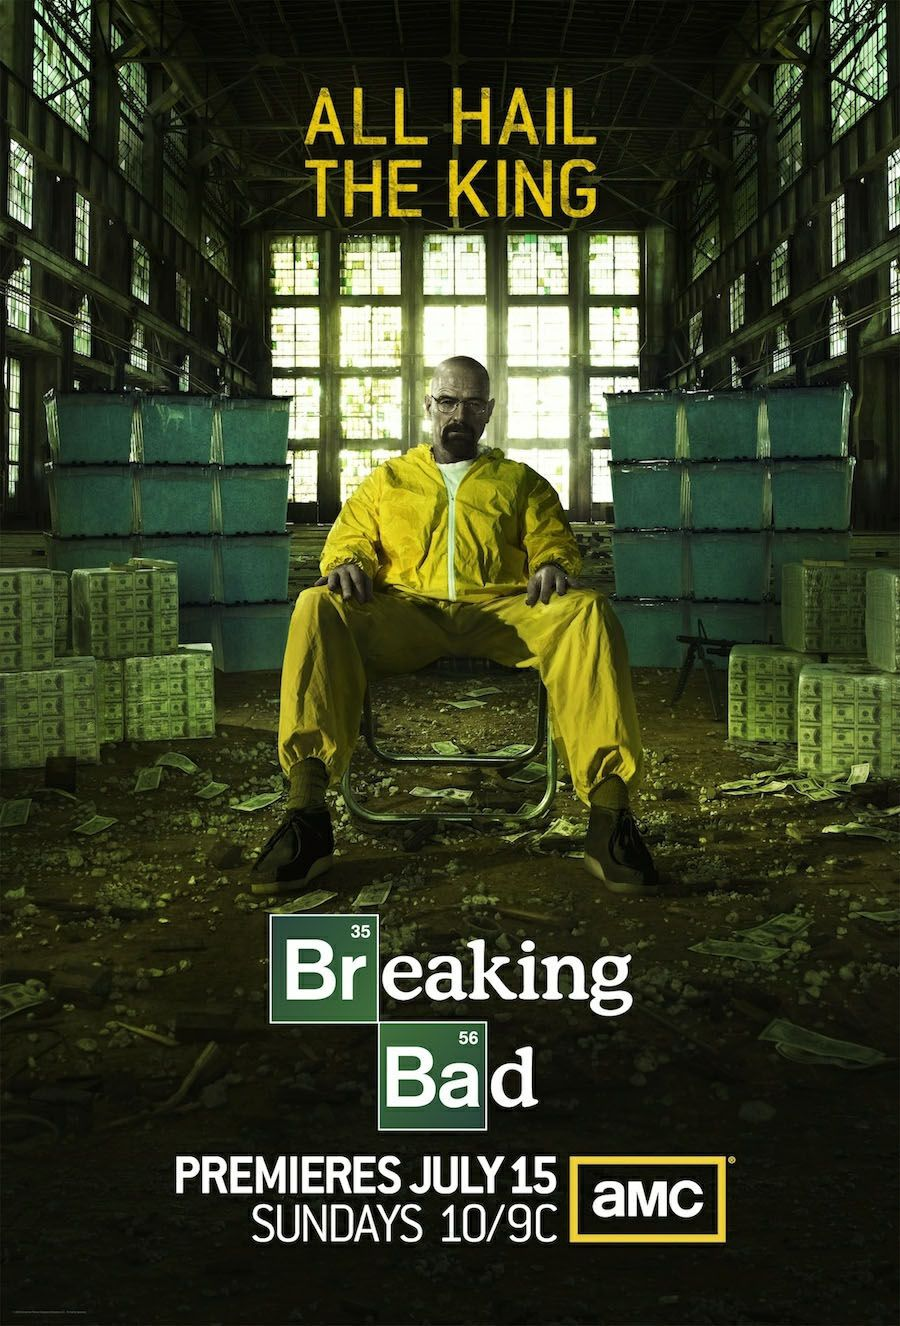 Breaking Bad Season 5 2012 2013 Breaking Bad Season 5 Breaking Bad Seasons Breaking Bad Poster